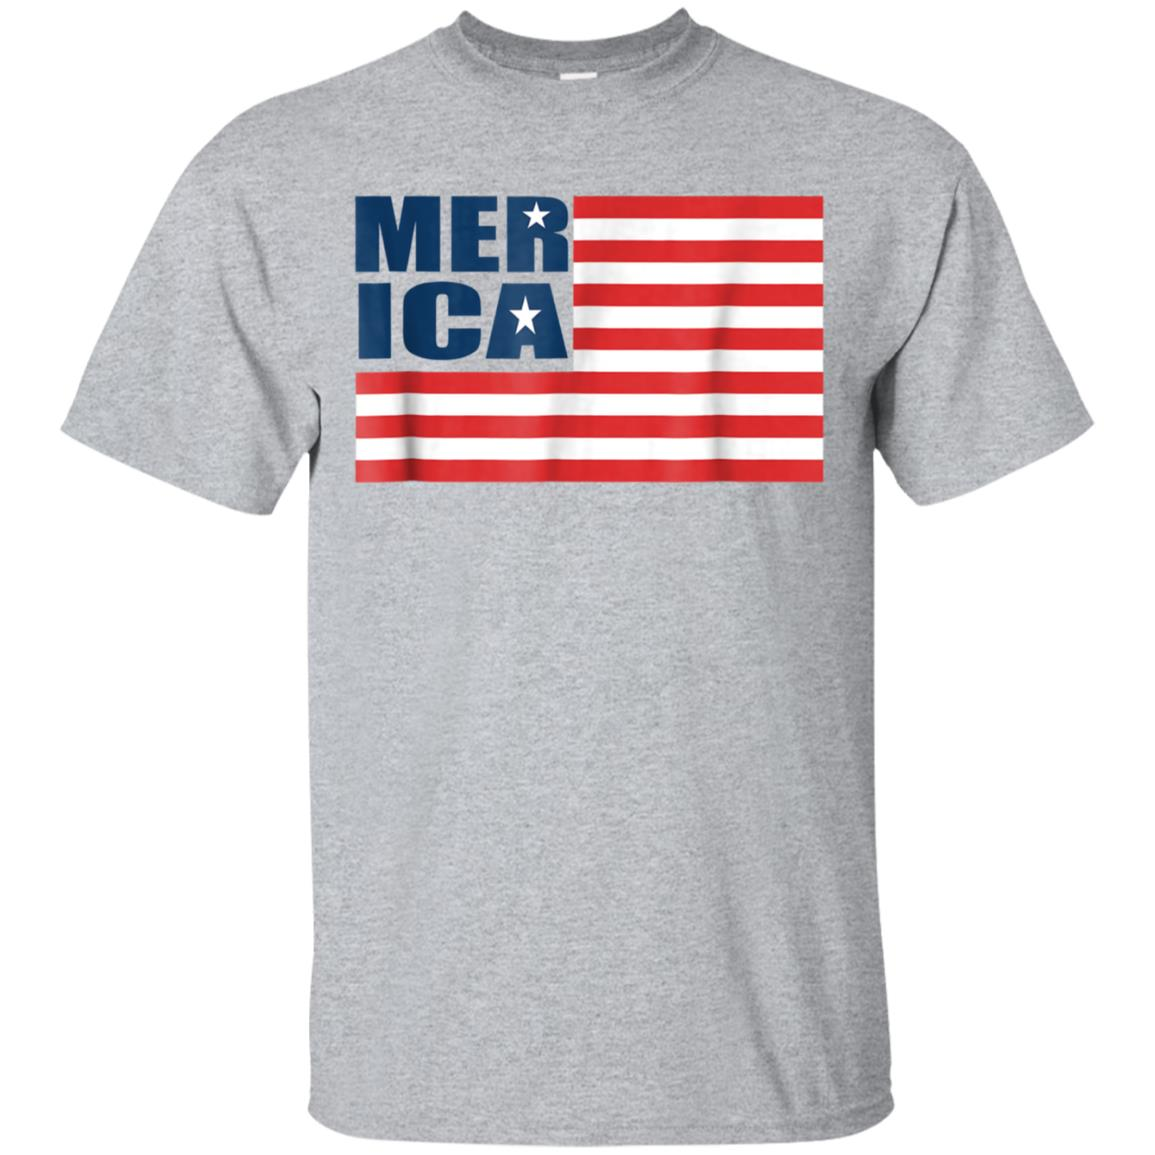 Merica American Flag 4th of July Patriotic t shirt for men 99promocode